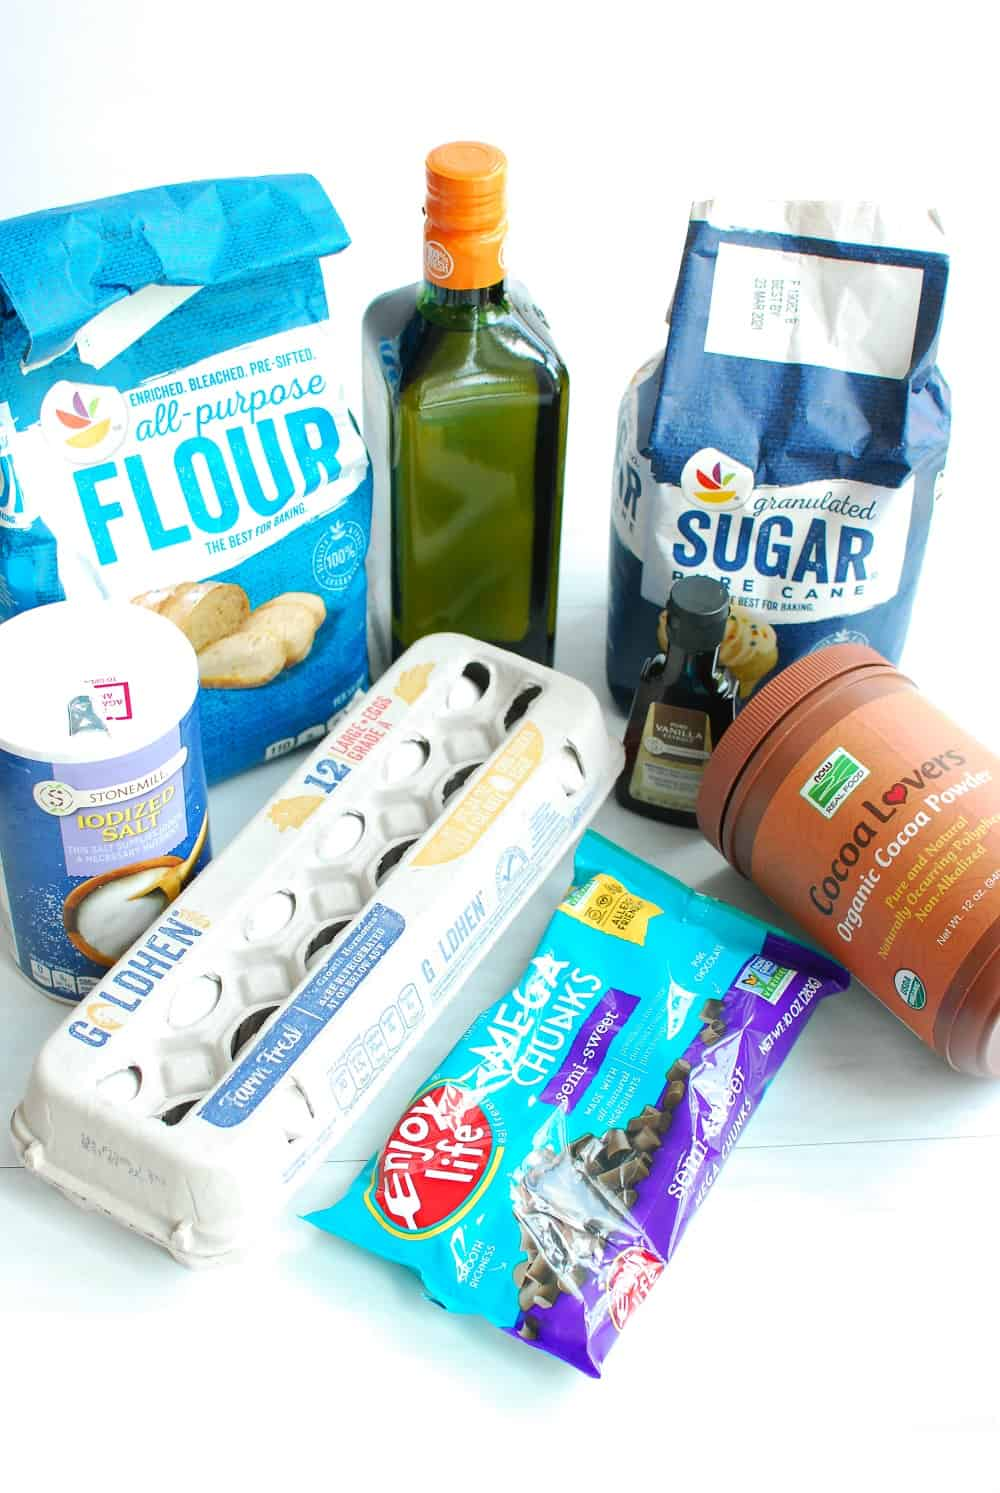 All the ingredients needed to make dairy free brownies